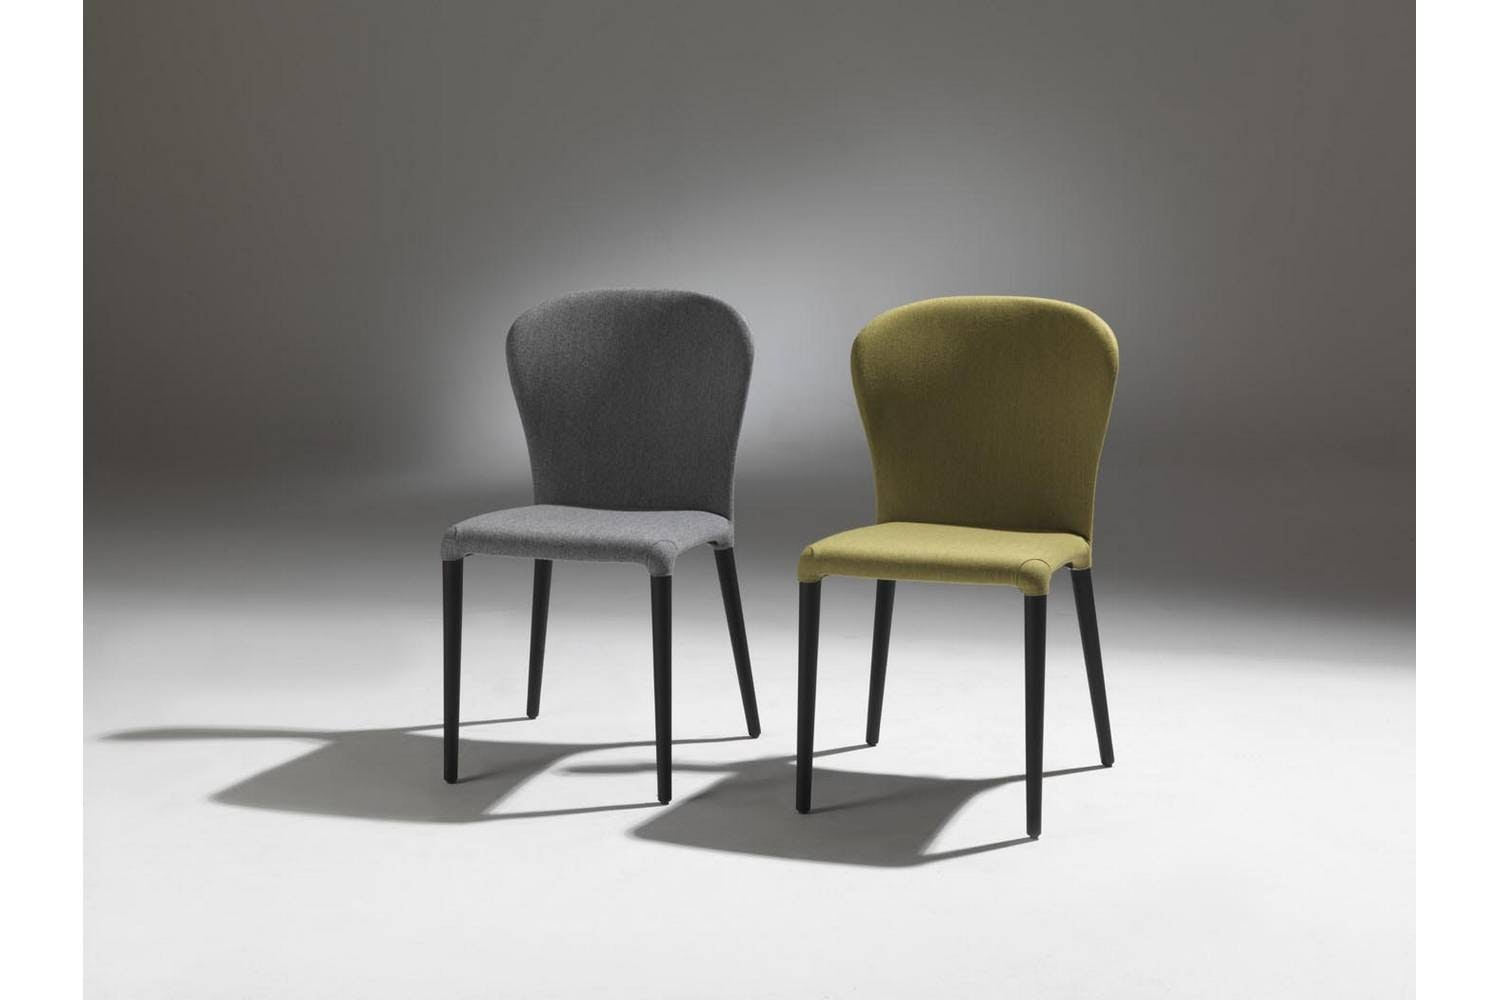 Astrid Chair by G. Carollo for Porada